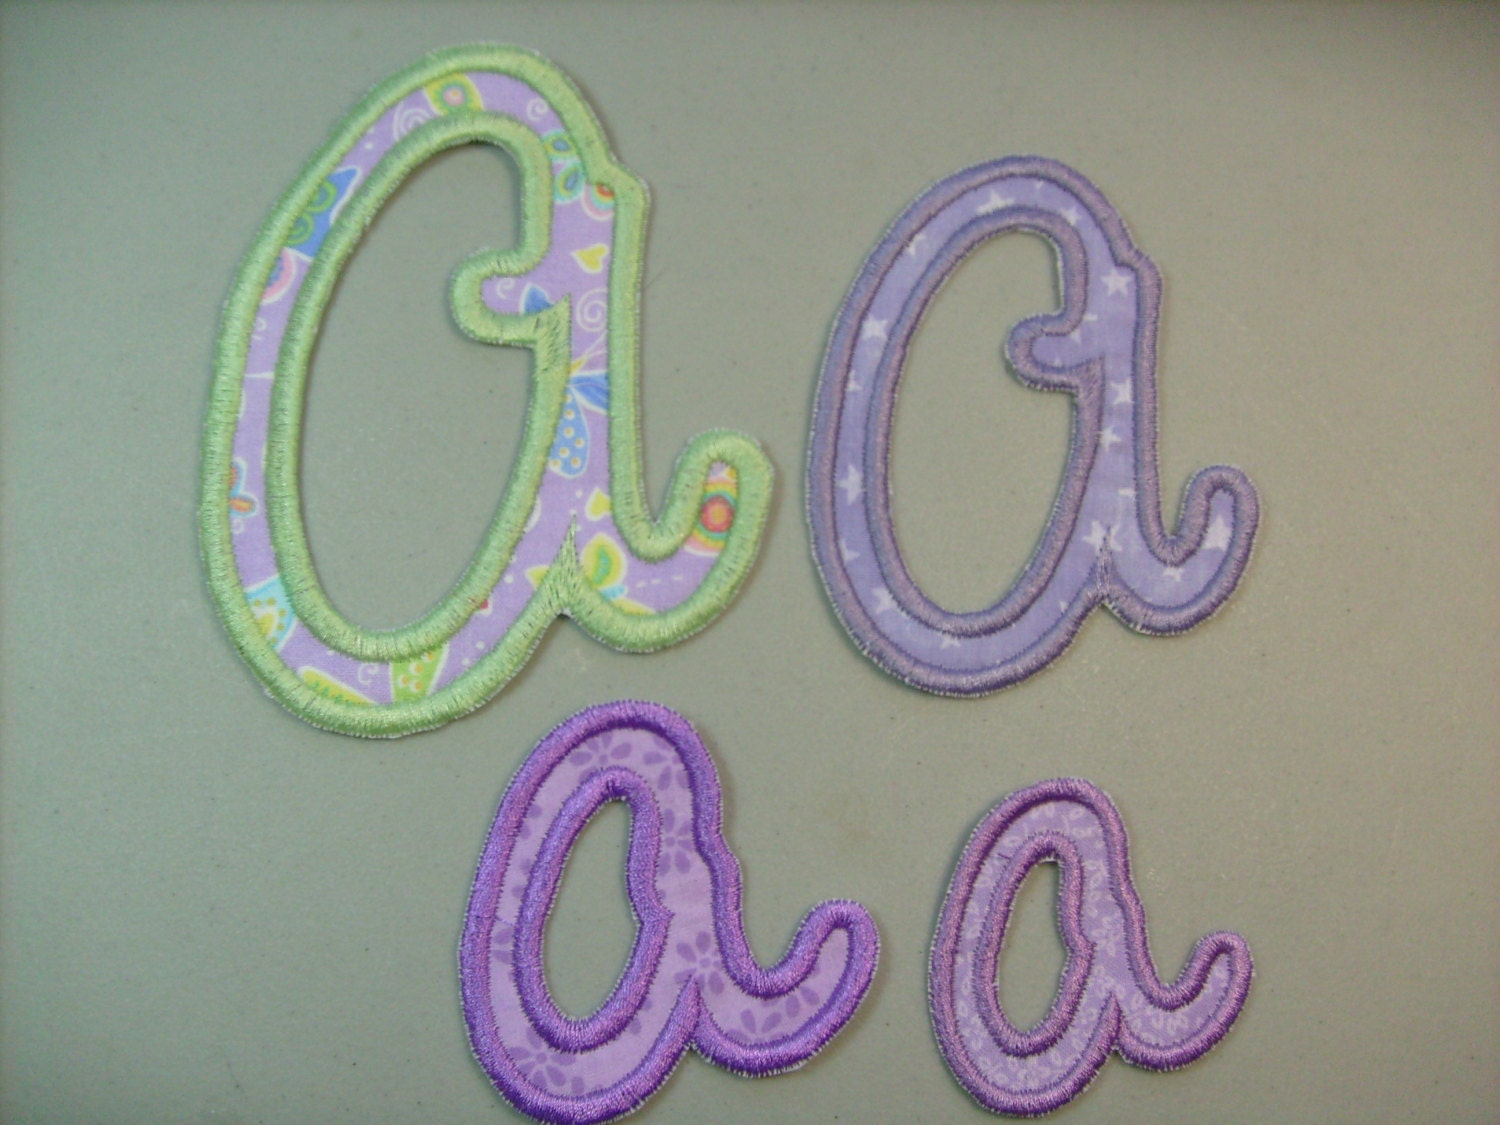 Sew On Letters For Clothing Script Monogram Letter Iron On Or Sew On Machine Embroidered